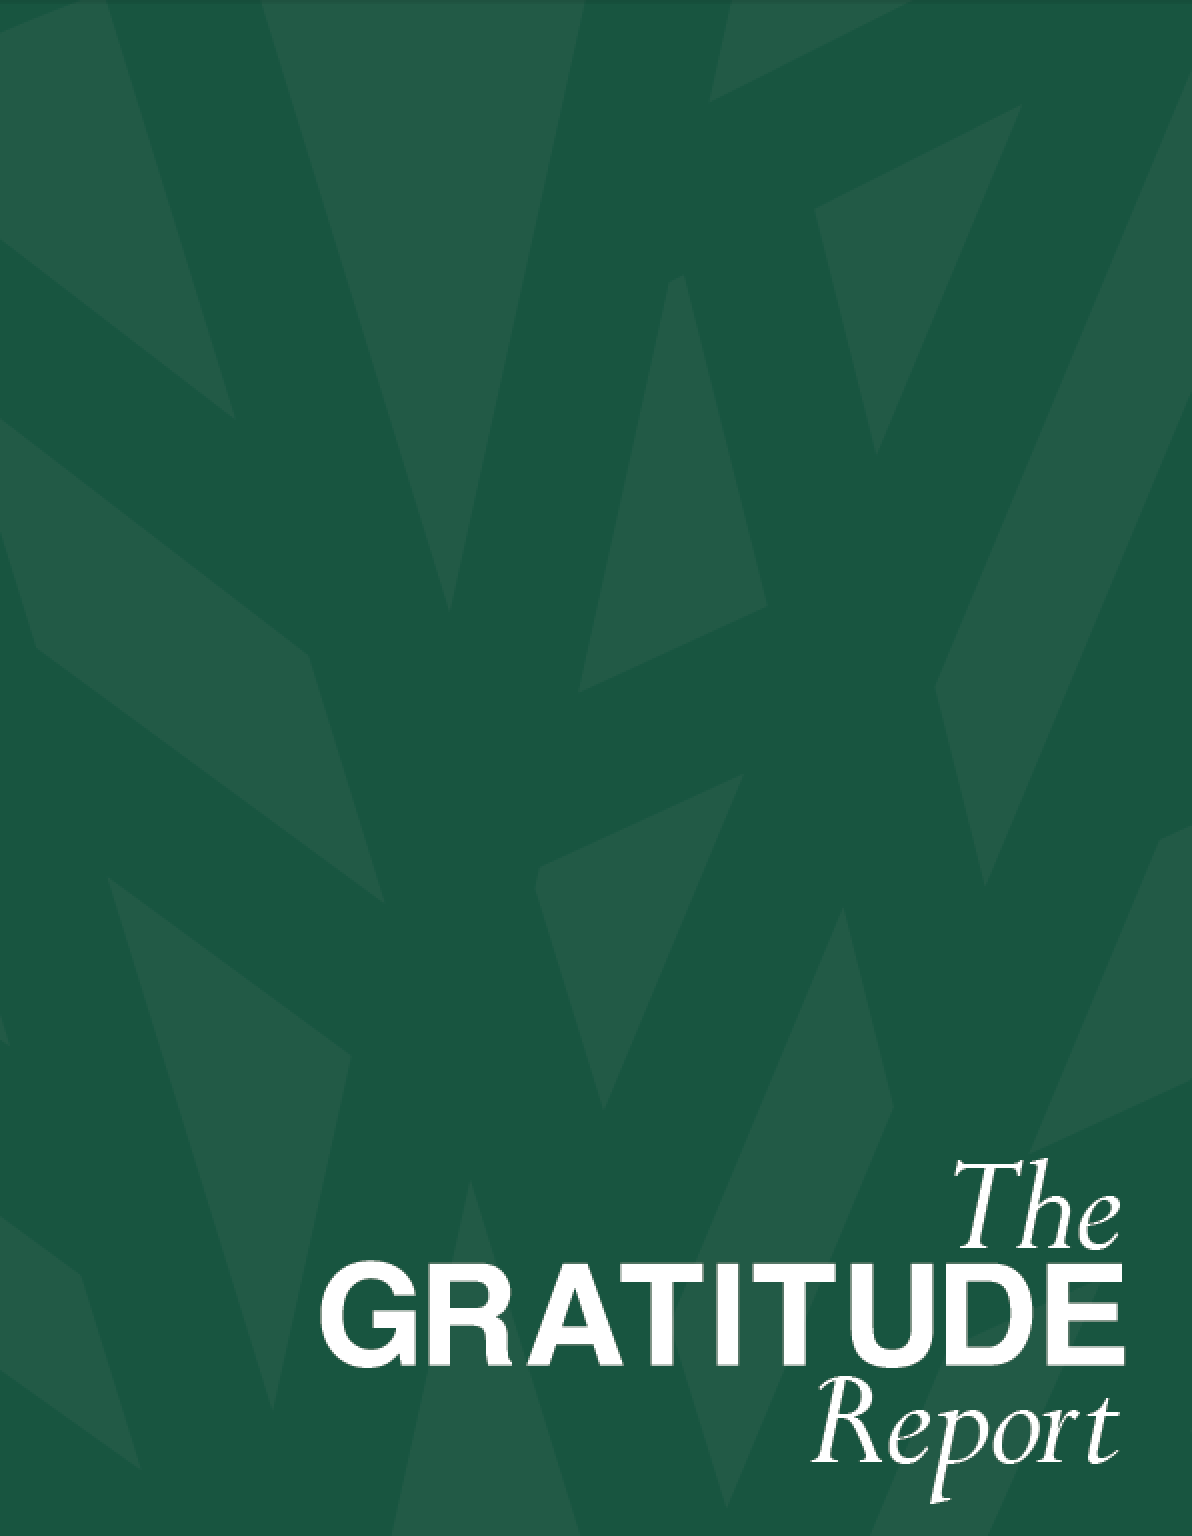 Eton Academy | The Gratitude Report | 2018 Annual Report